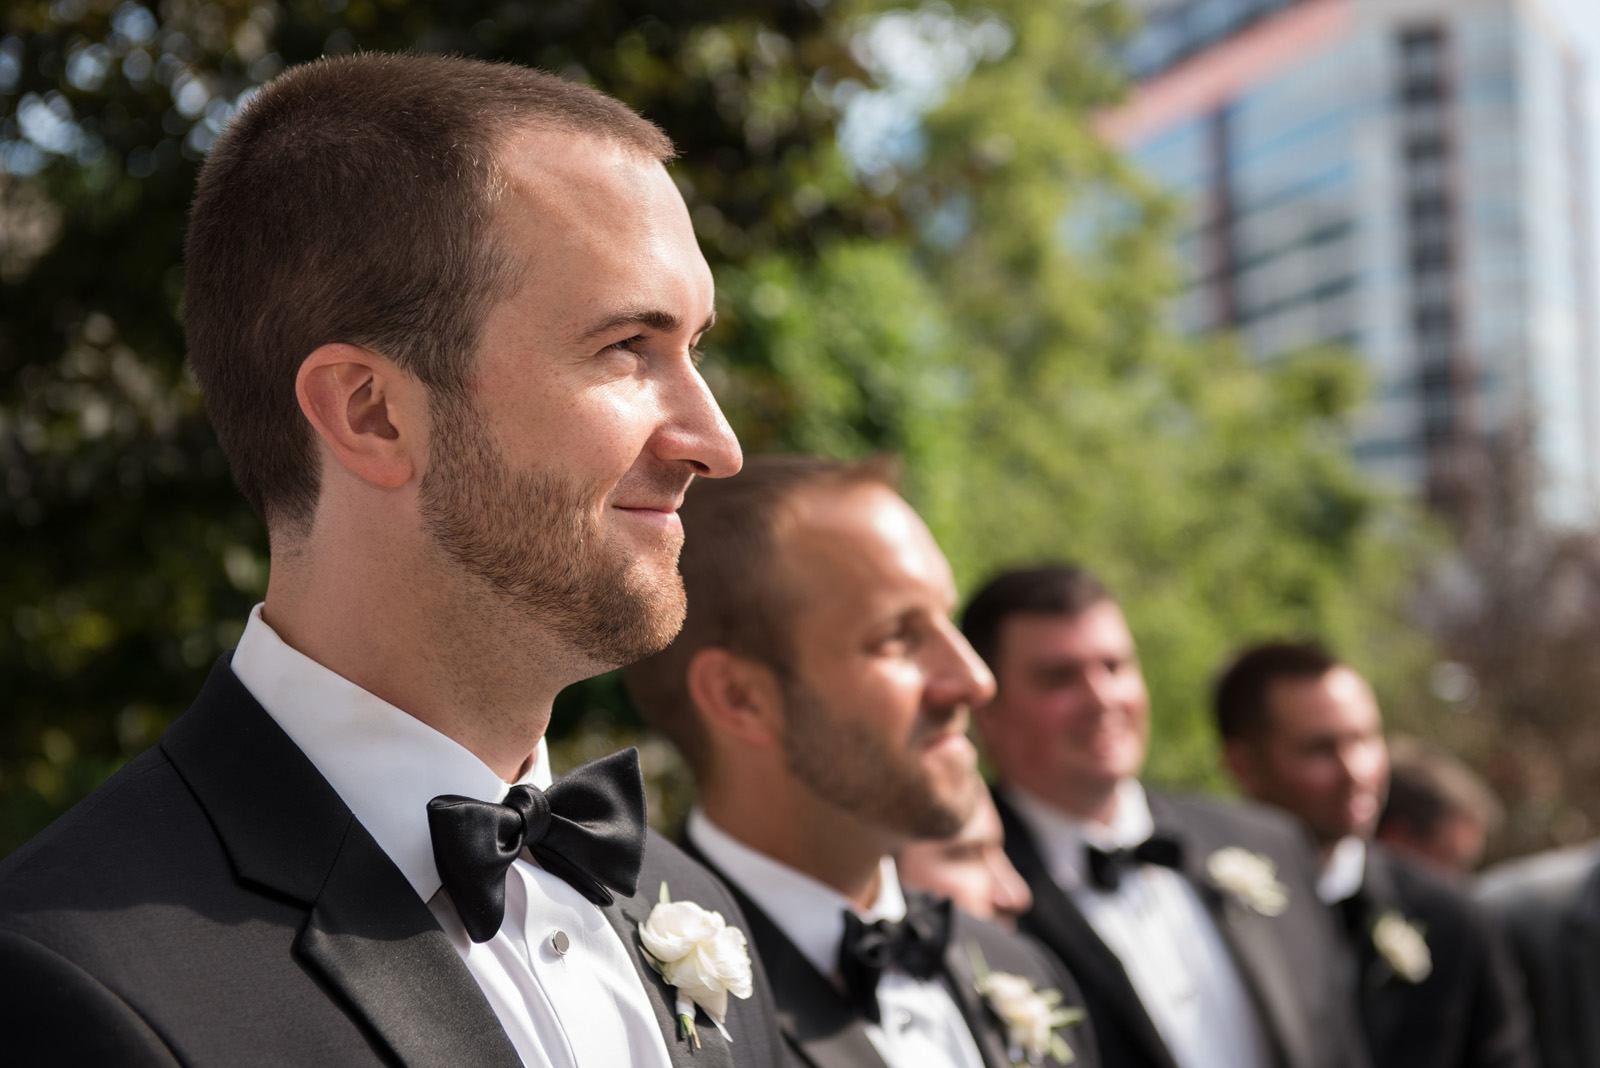 Groom watching bride come down the aisle